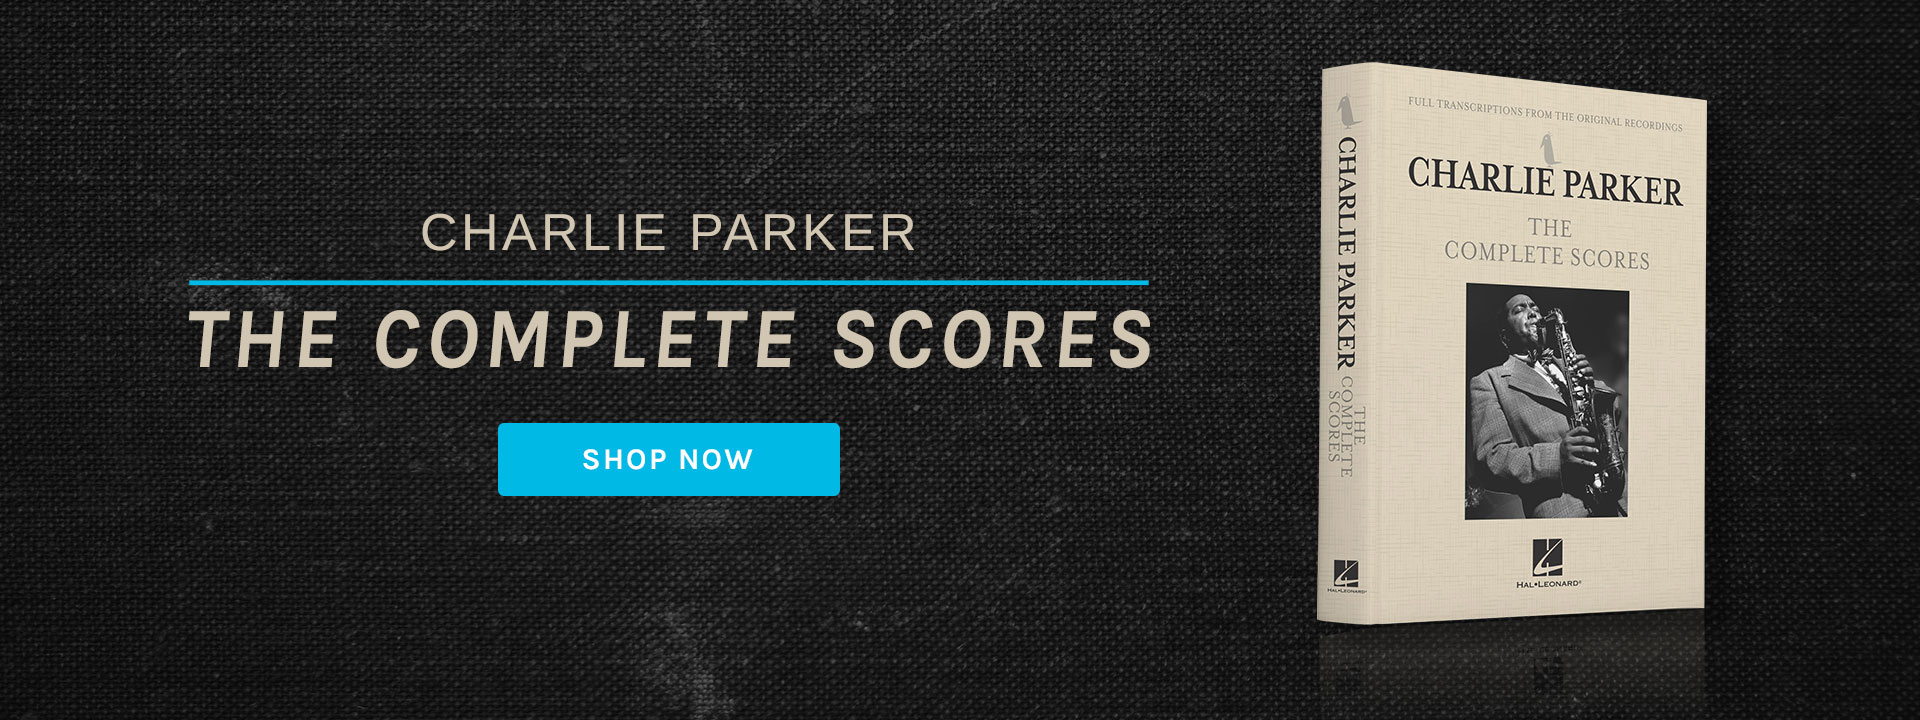 Charlie Parker - The Complete Scores - Pre-order Now!